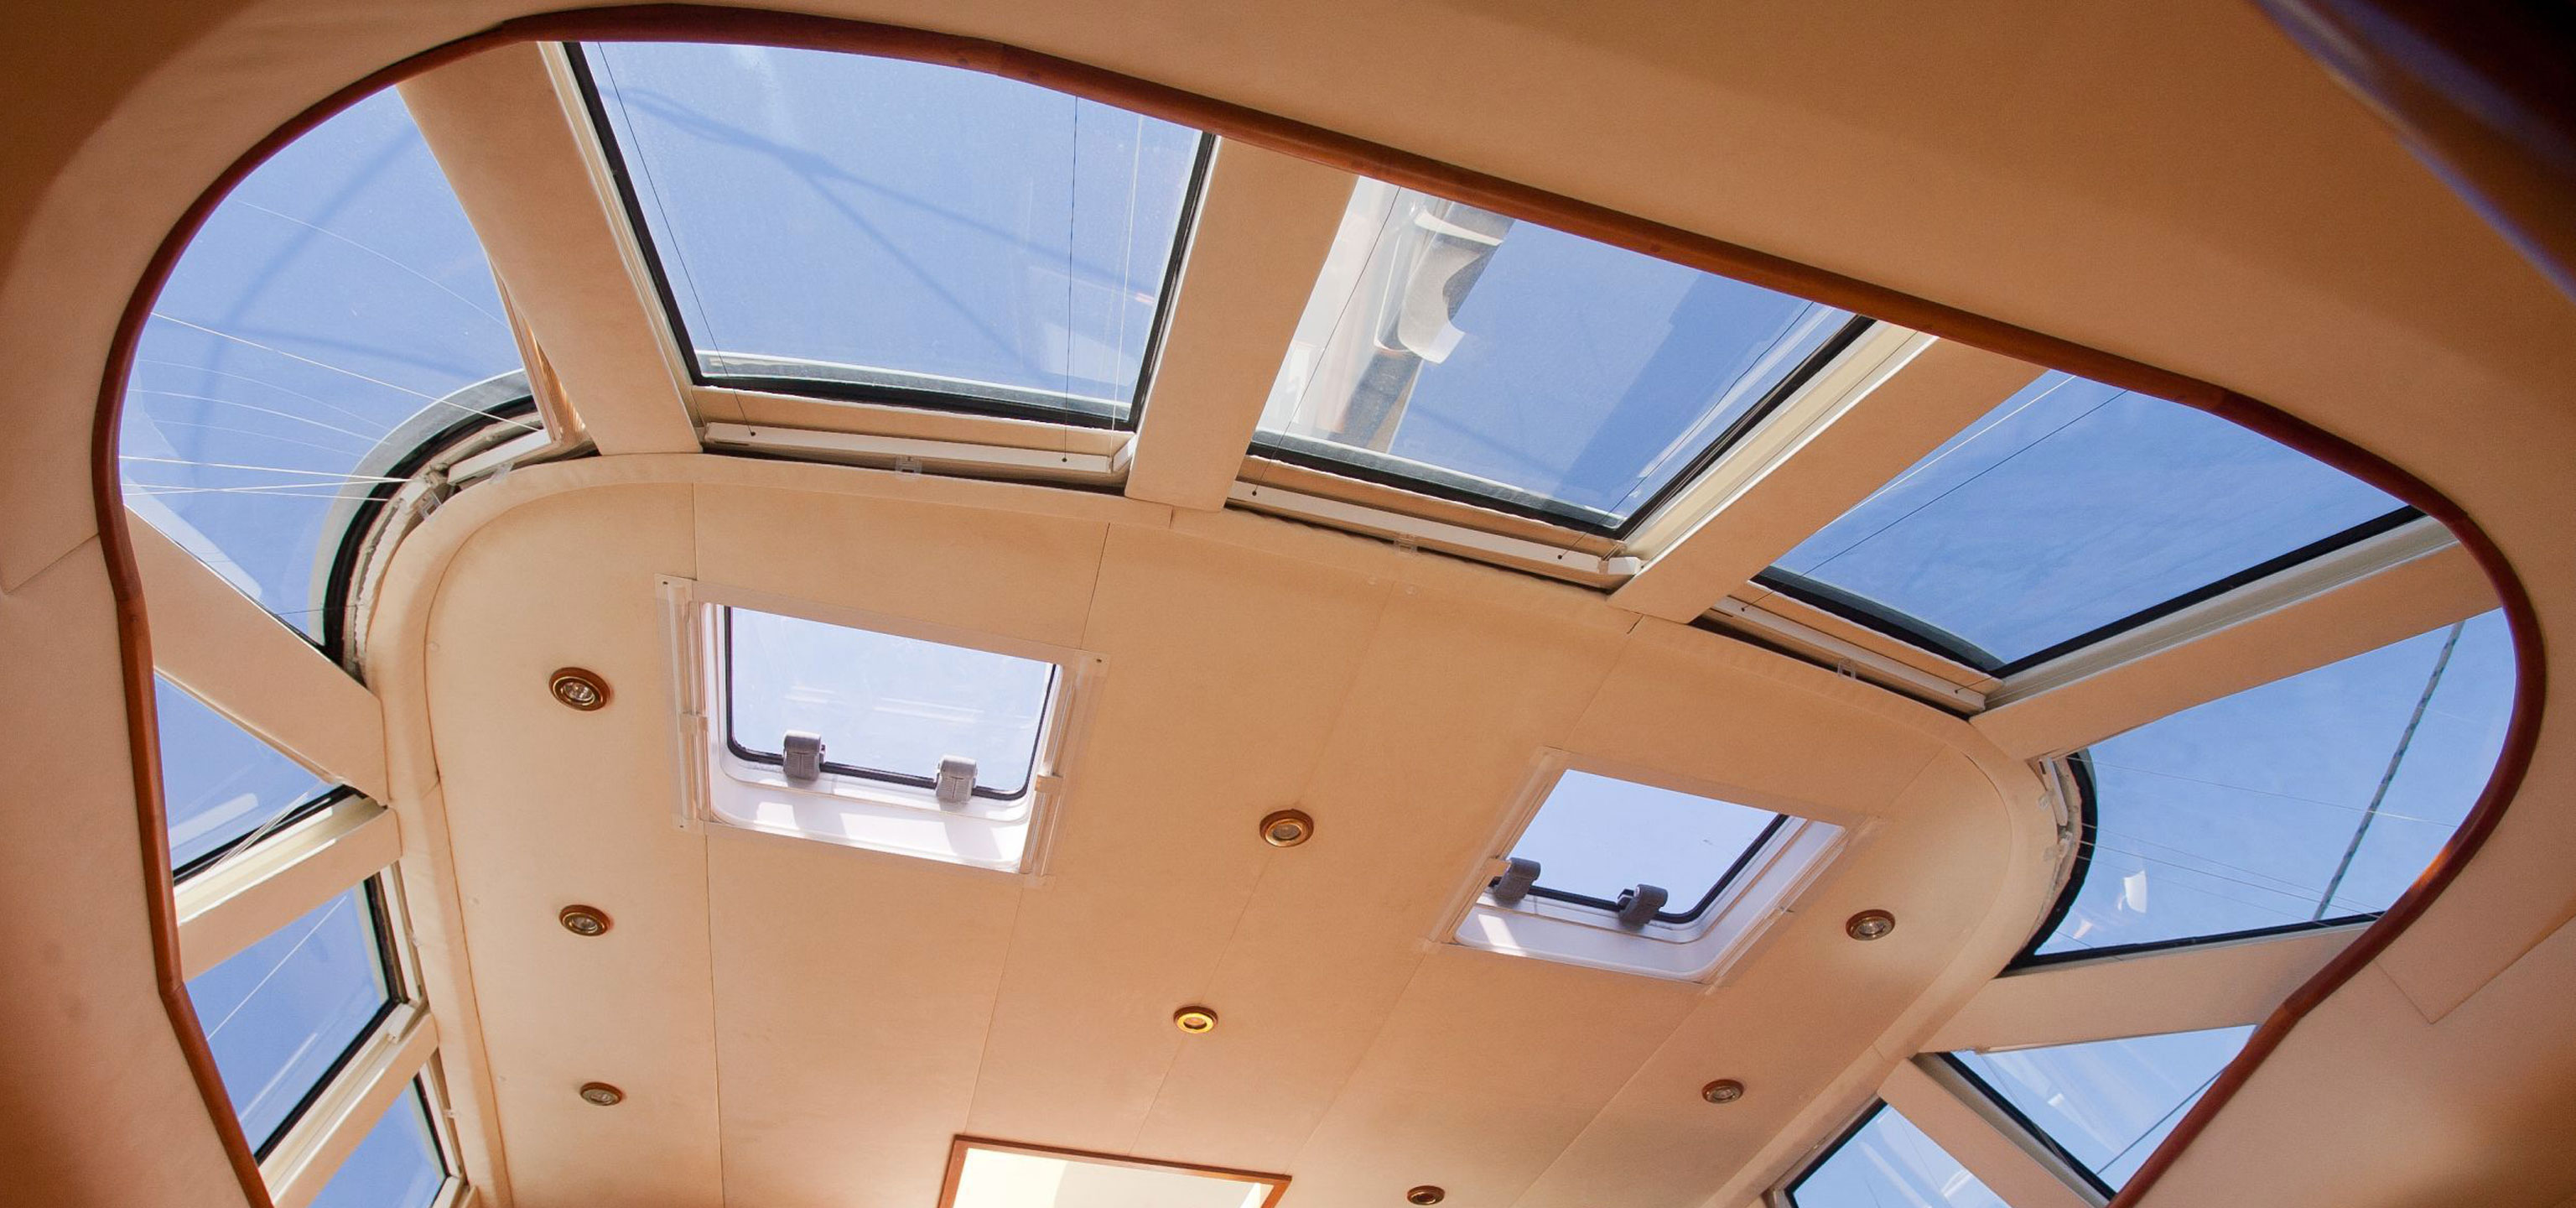 Salon Skylight